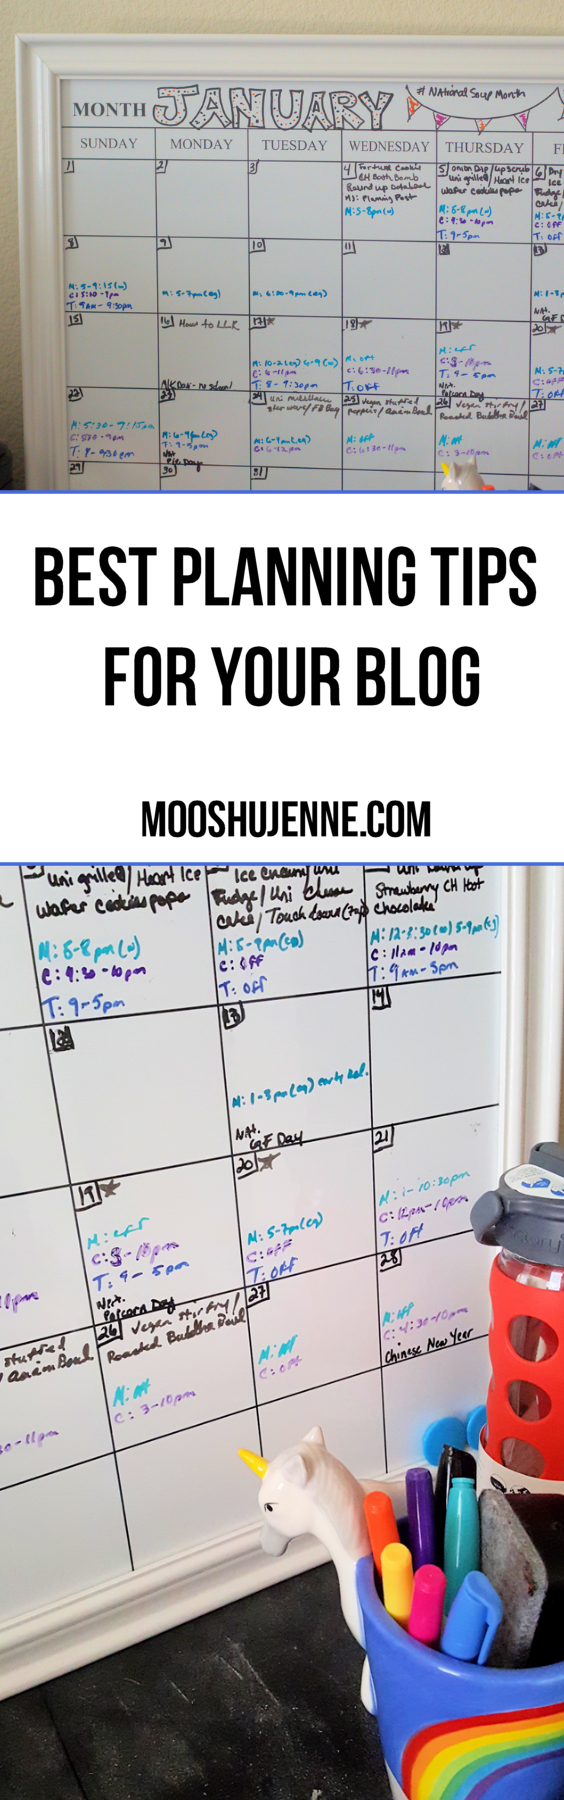 Usually that's about three to four posts a day that need photography, cooking, crafting, and writing. That between three other peoples schedules can easily make one post go amidst in my mind. But why a dry erase calendar board?